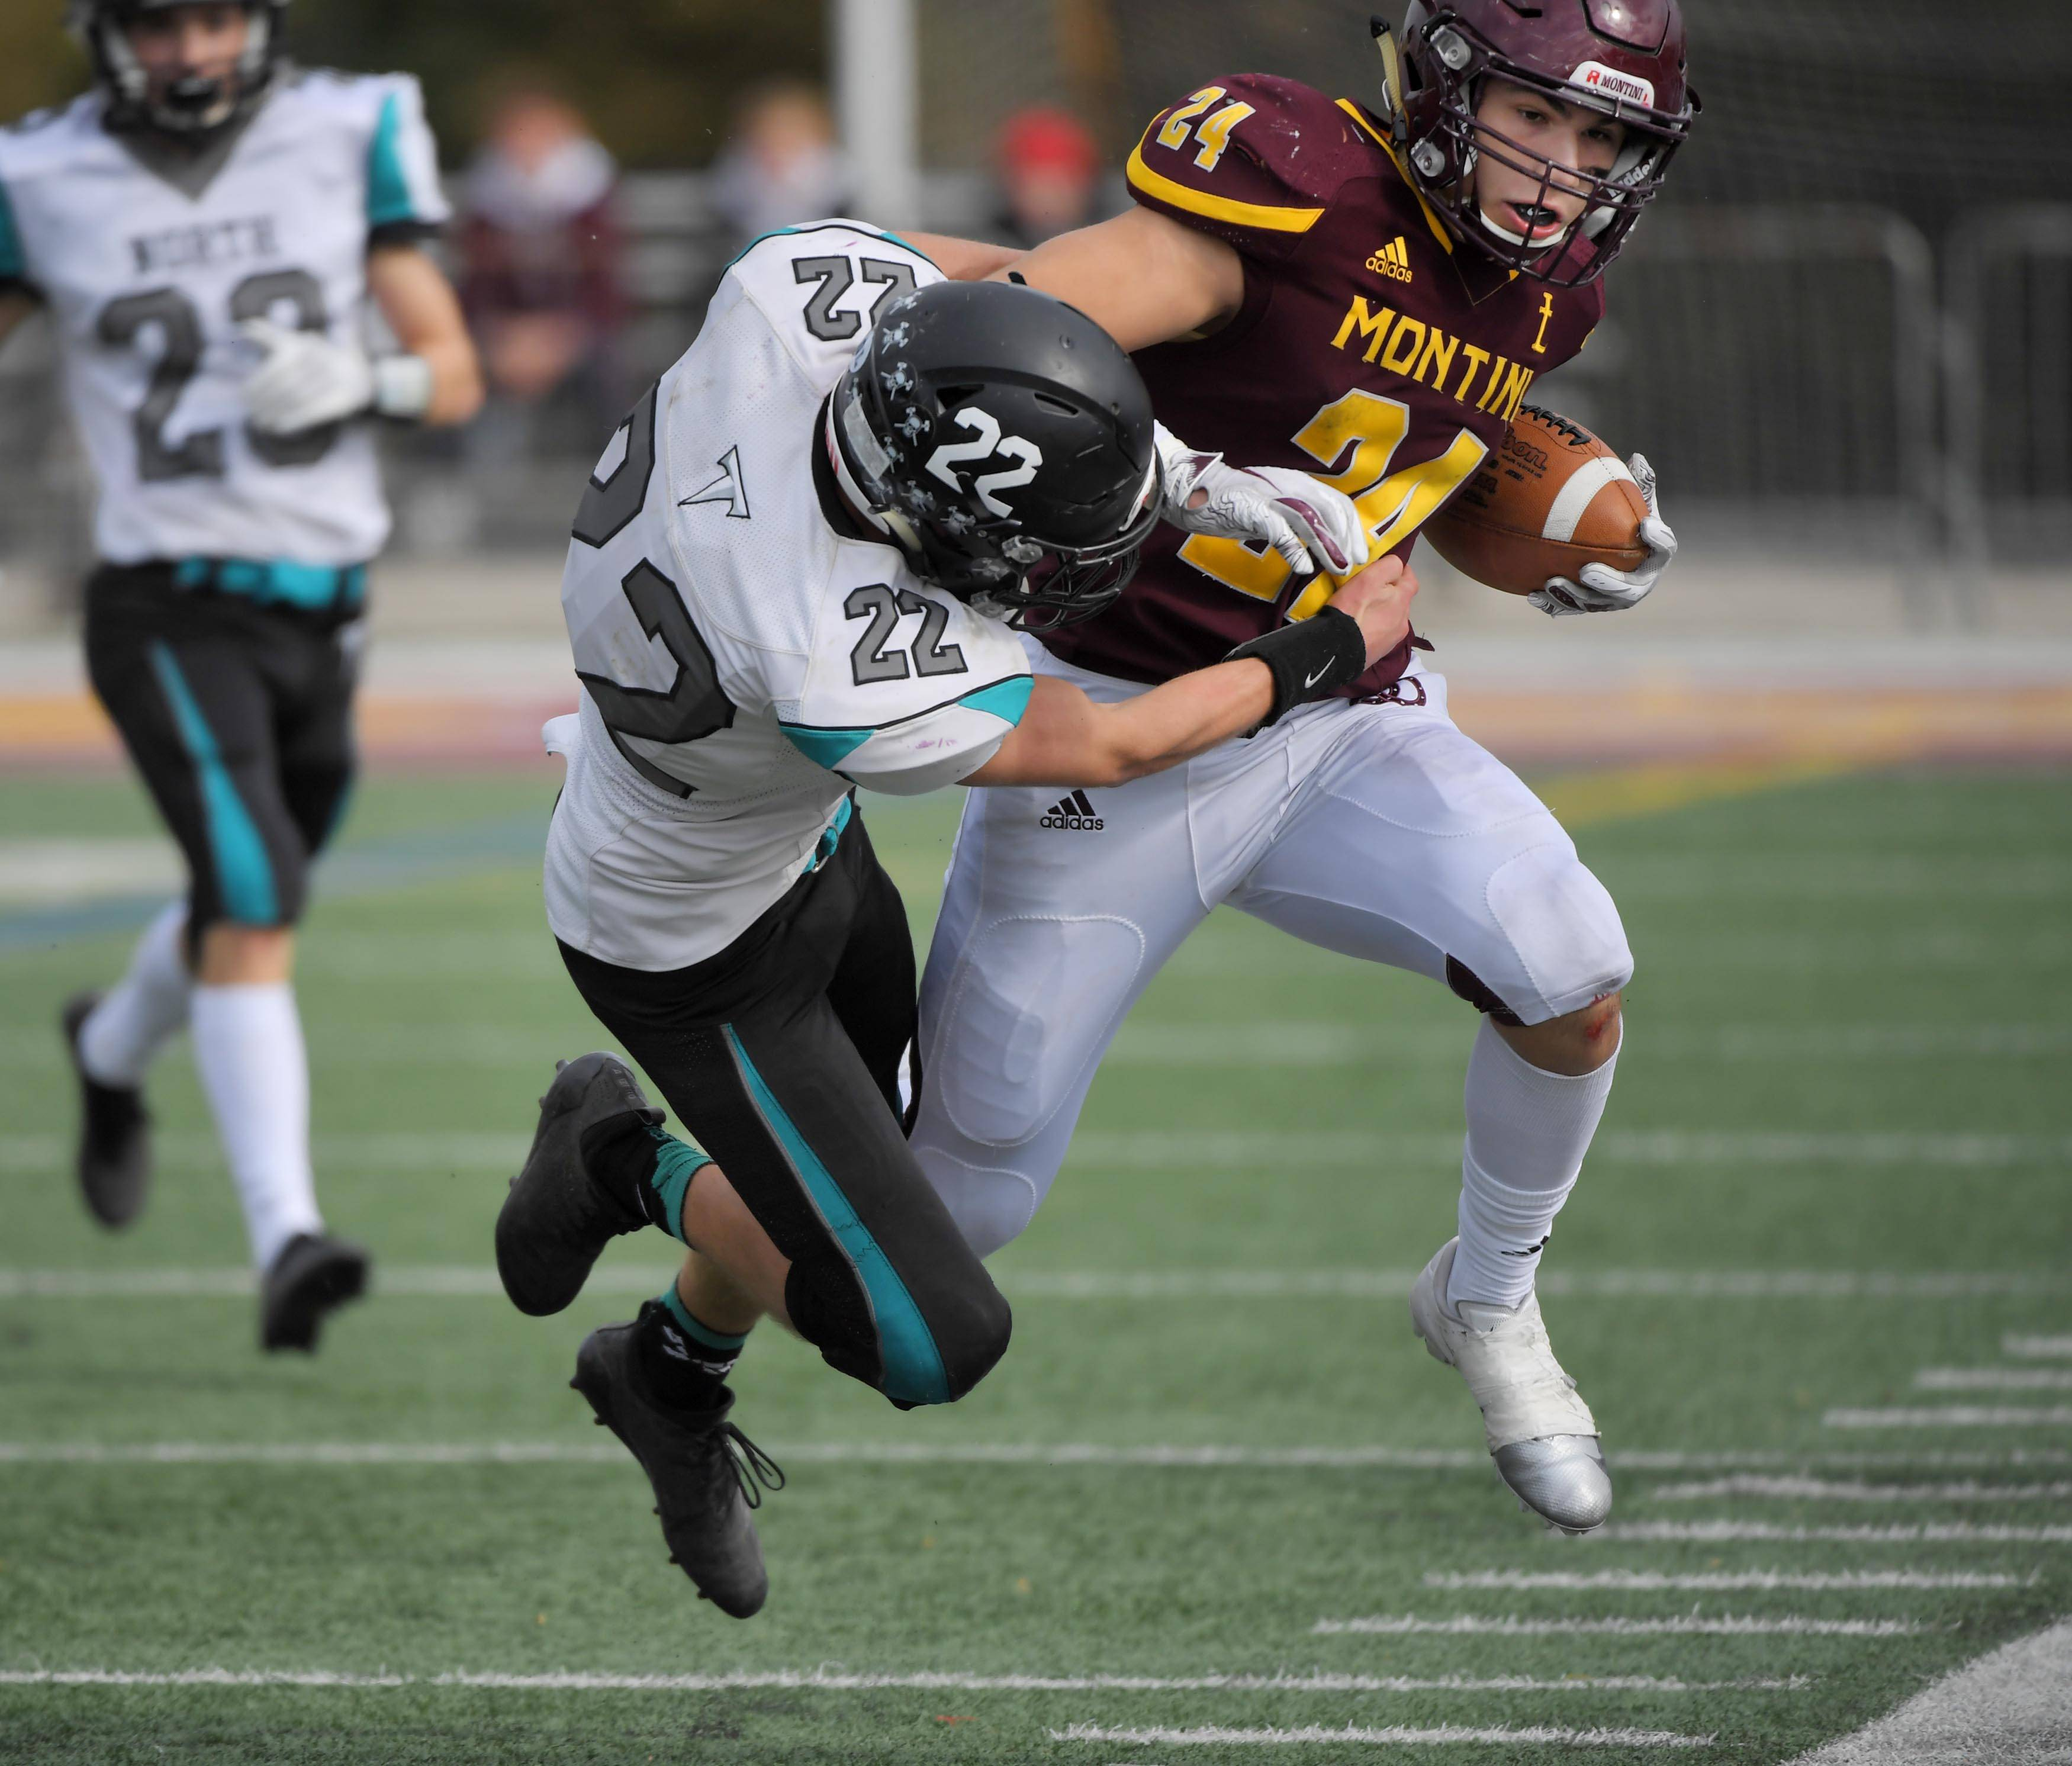 Montini's Nick Fedanzo is forced out of bounds after a long run by Woodstock North's Zachary Stopczynski in a playoff football game in Lombard Saturday.